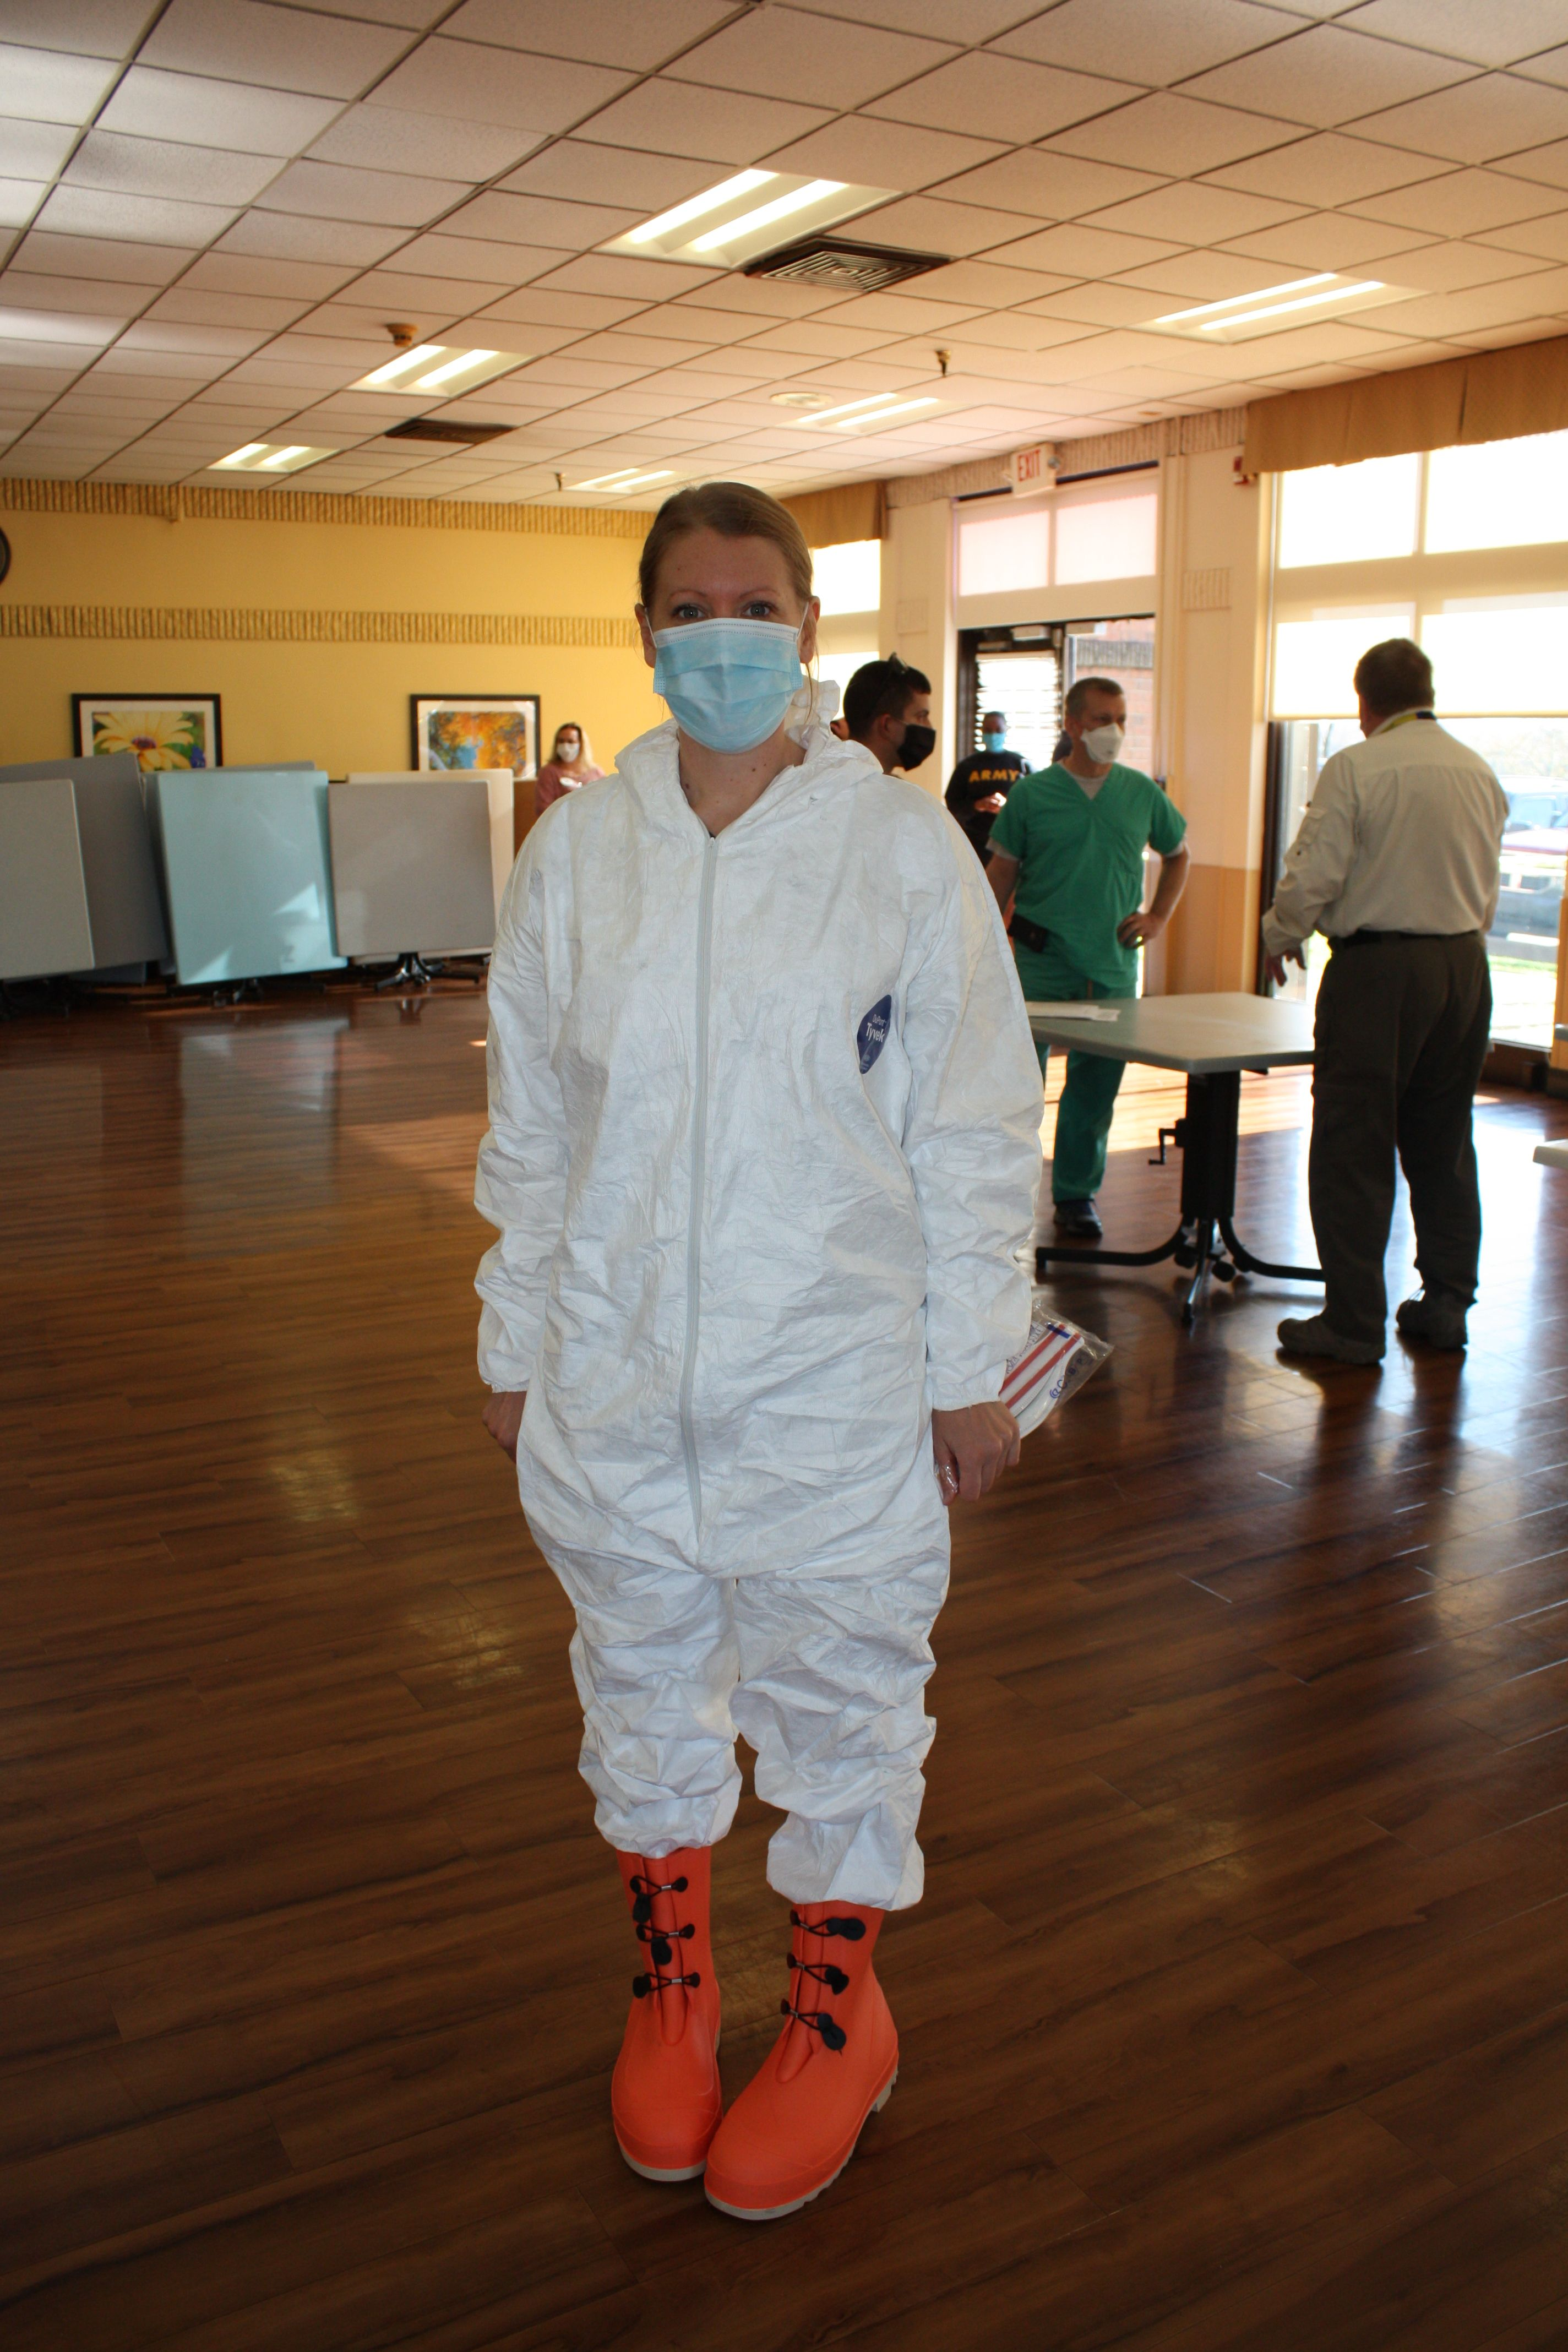 Stacy Tressler prepares to help with COVID-19 testing in a West Virginia nursing home.